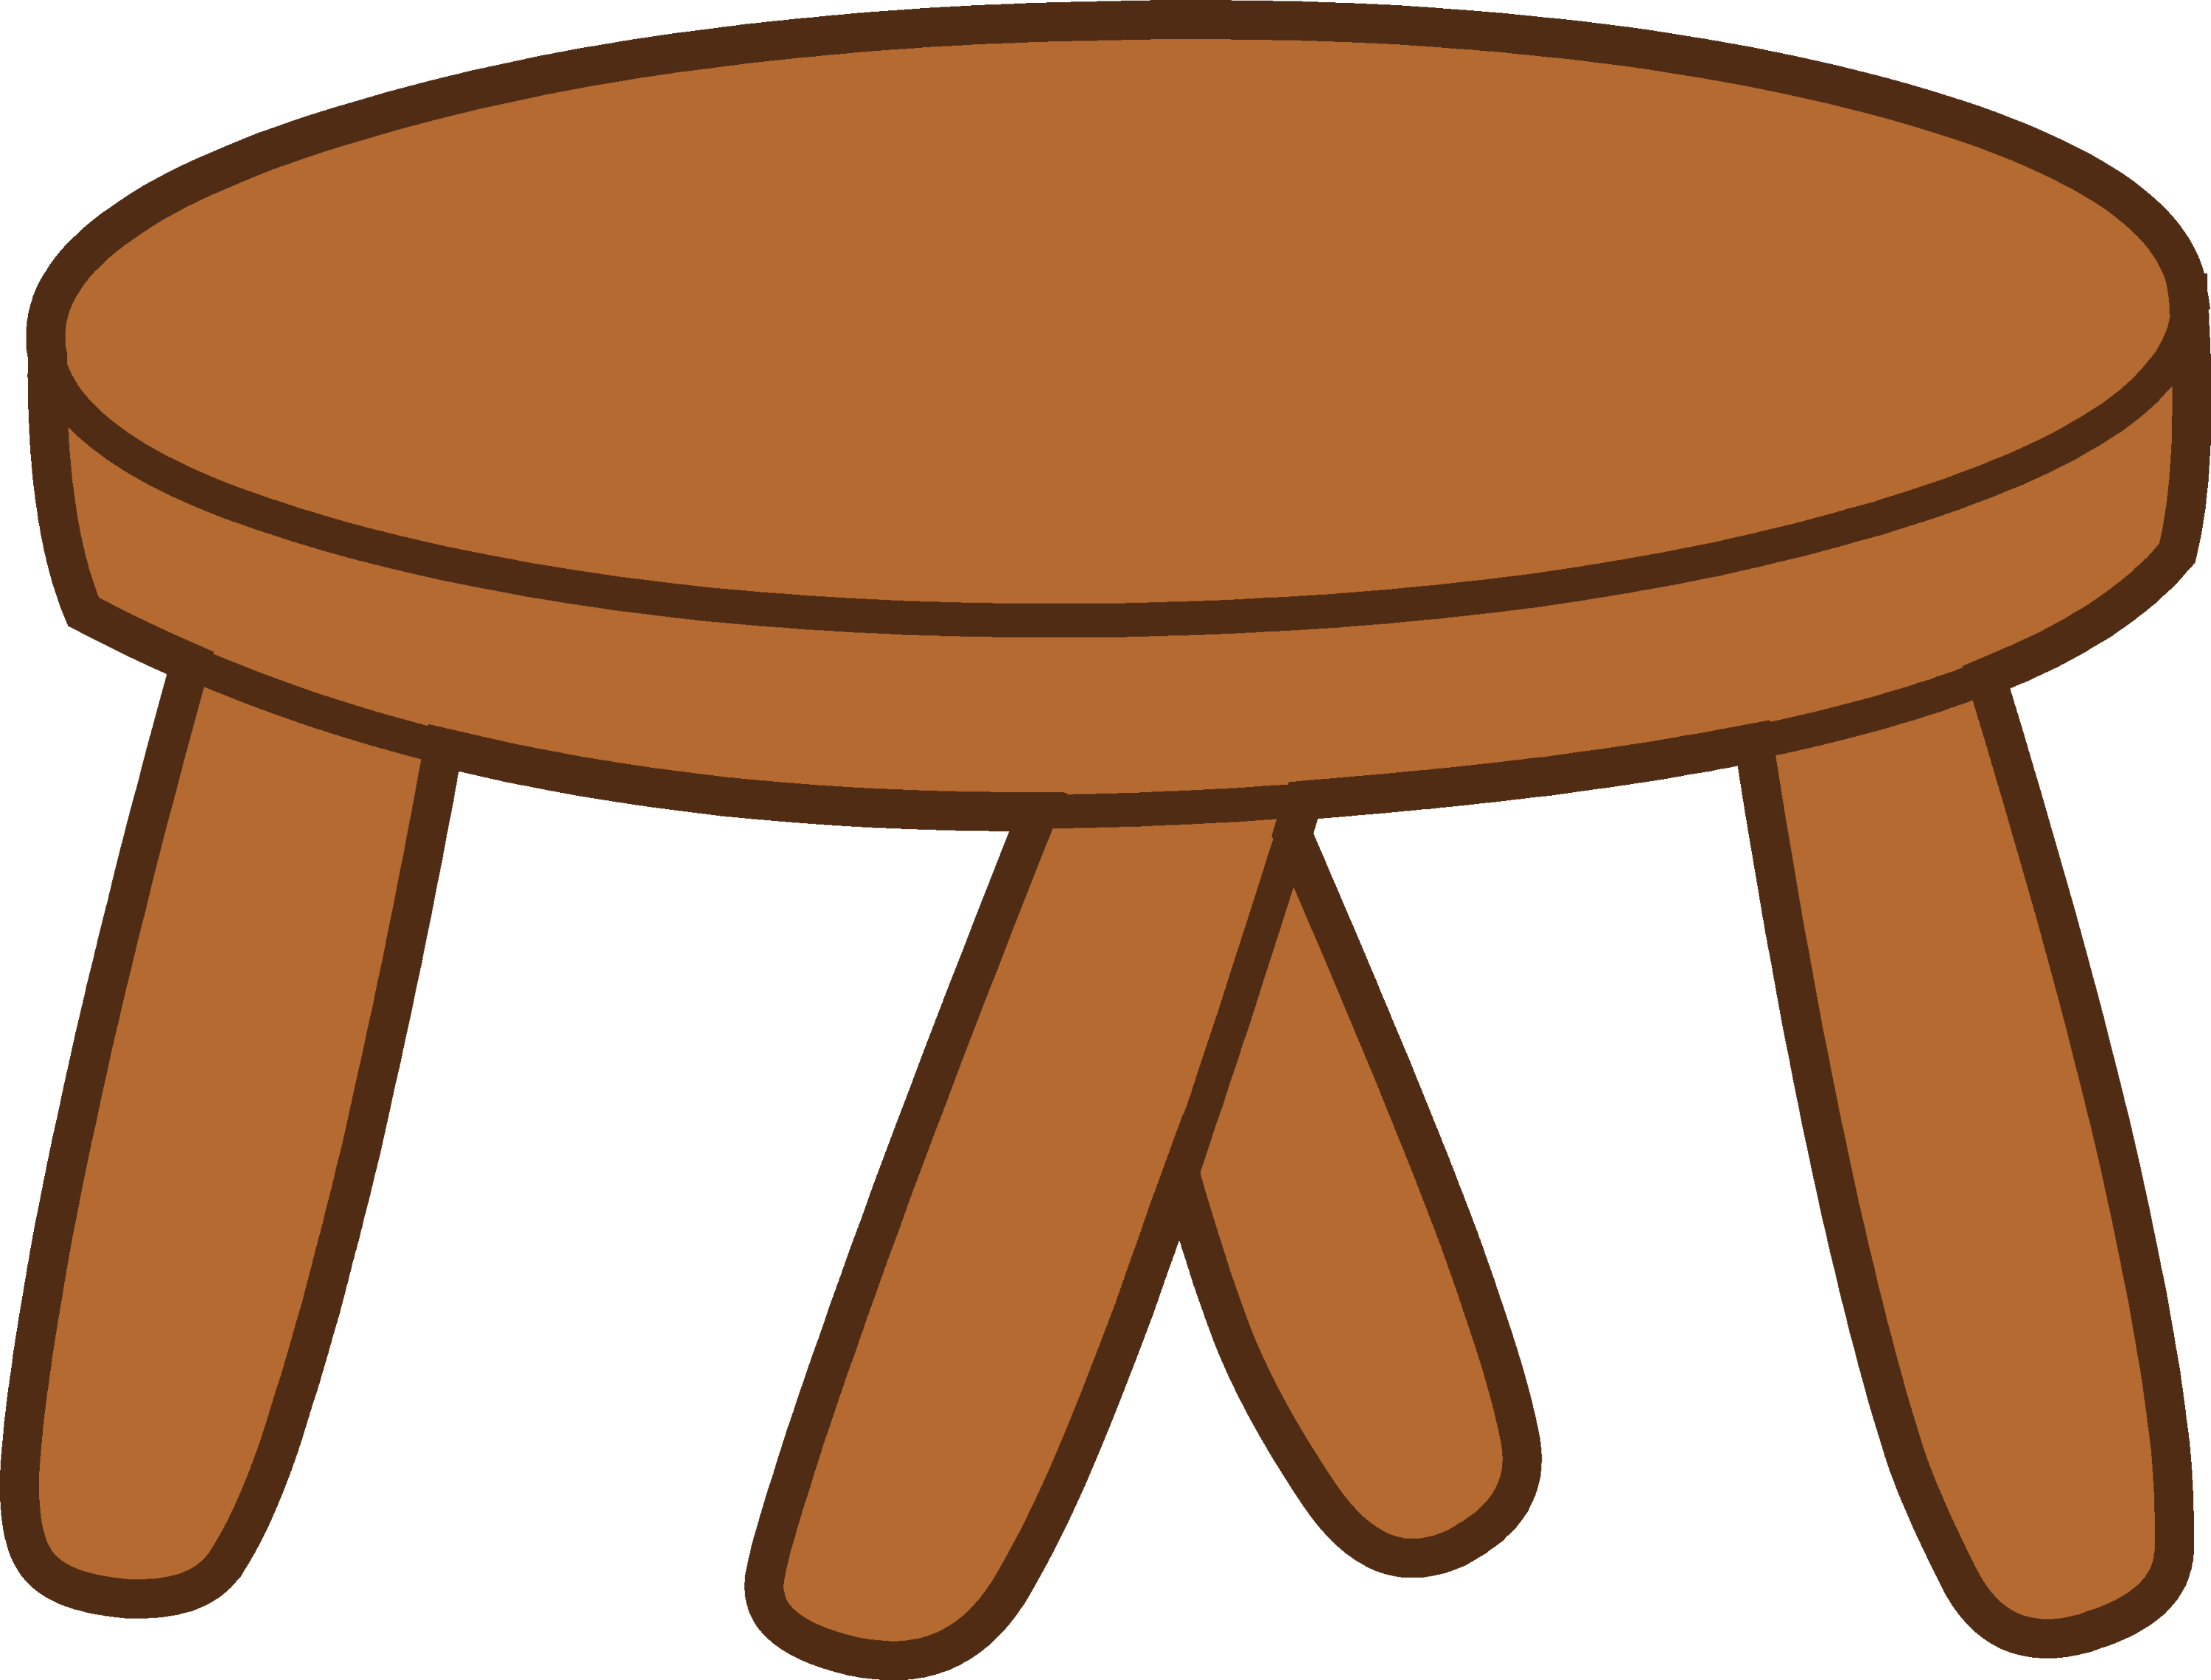 Wooden Stepping Stool Free Clip Art : woodenstool from sweetclipart.com size 3781 x 2873 png 87kB